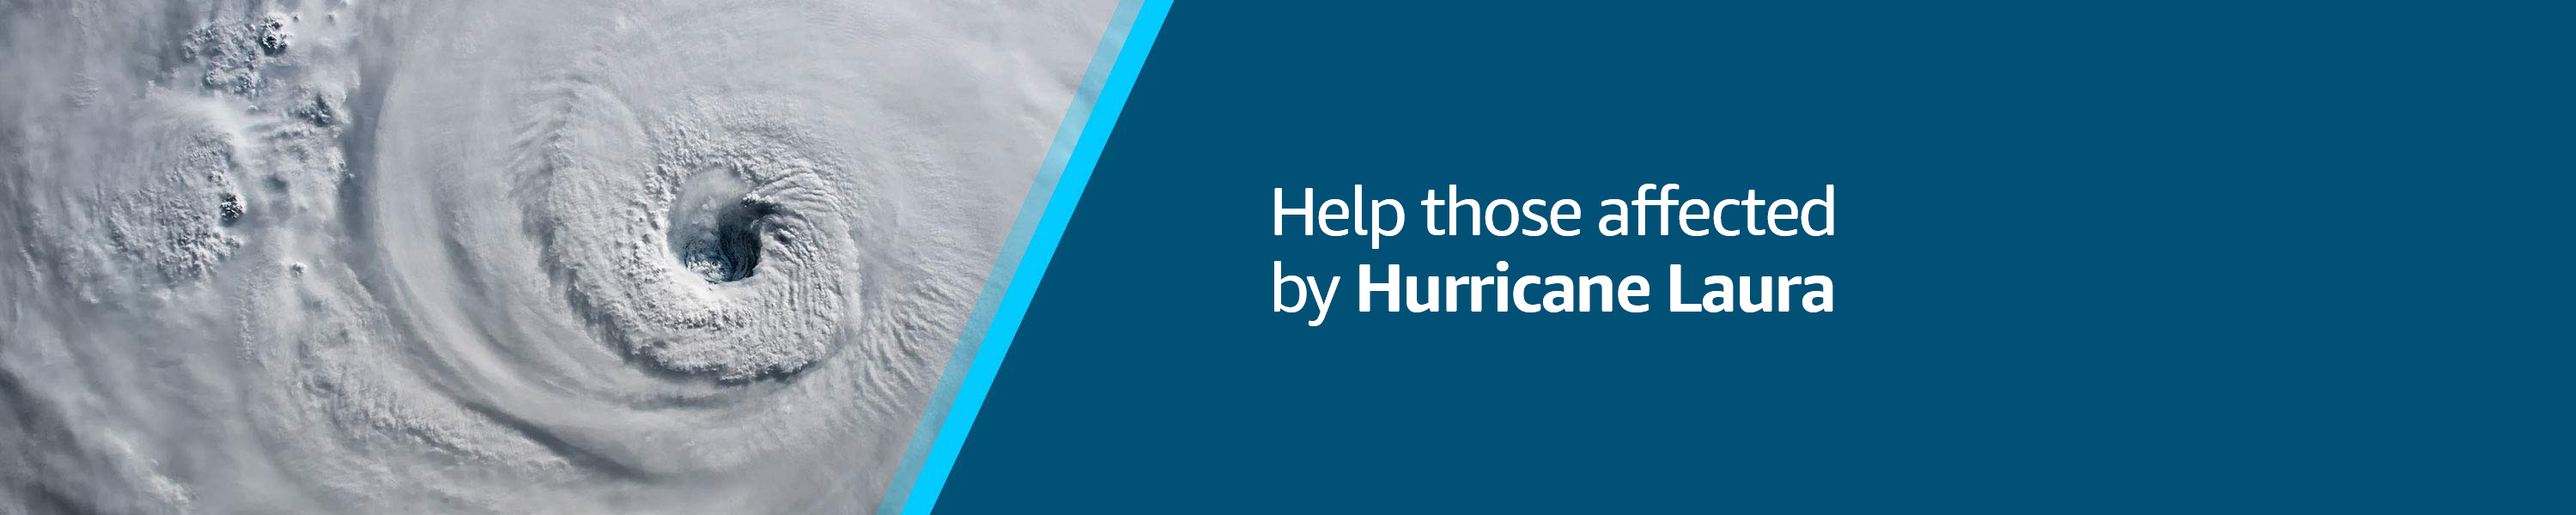 Help those affected by Hurricane Laura